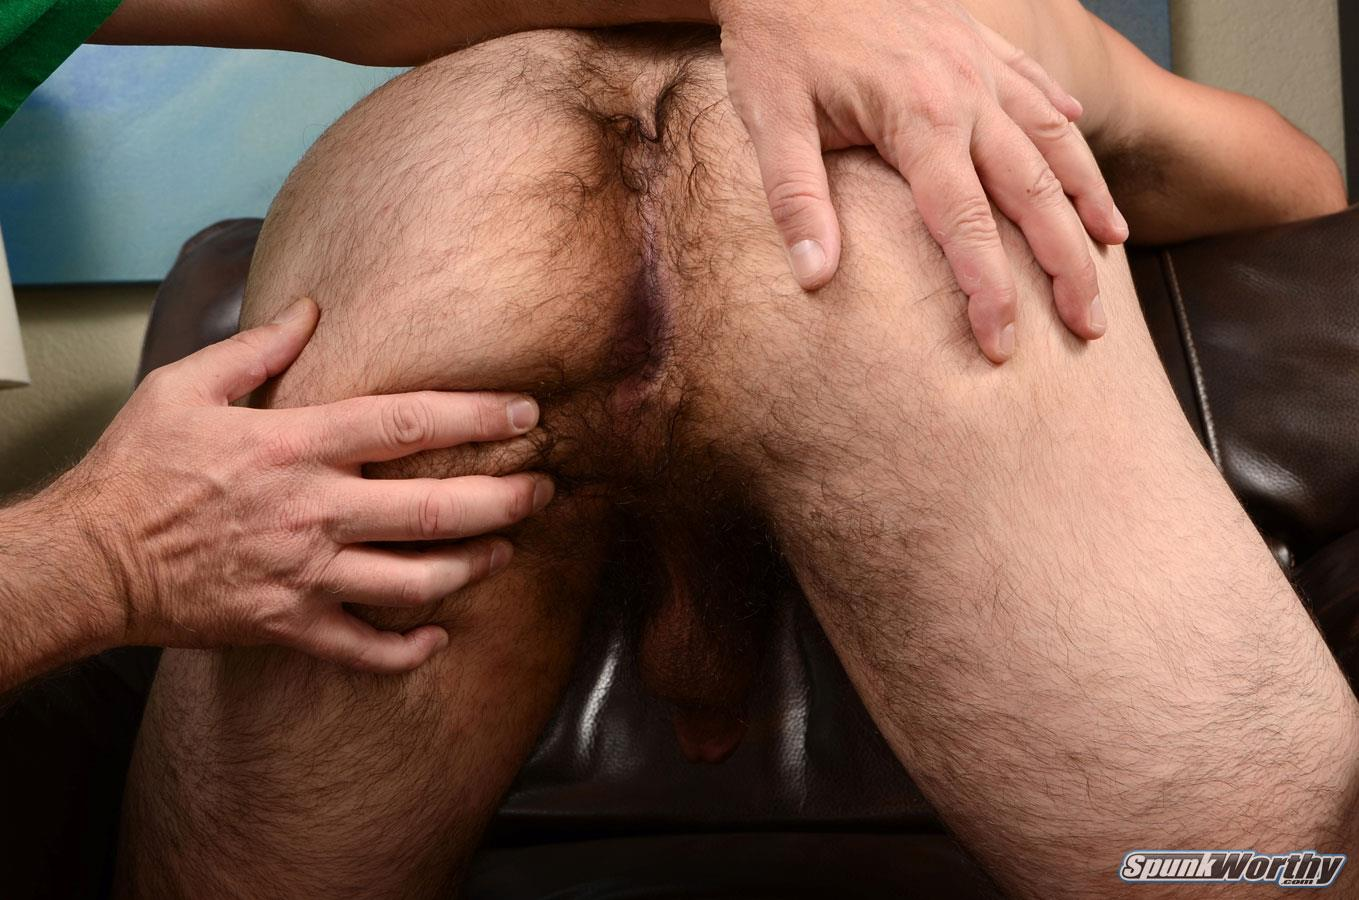 SpunkWorthy-Nevin-Straight-Redneck-Marine-Gets-A-Blowjob-and-Rimming-Amateur-Gay-Porn-08 Straight Hairy Redneck Marine Cub Gets A Blowjob and Rimming